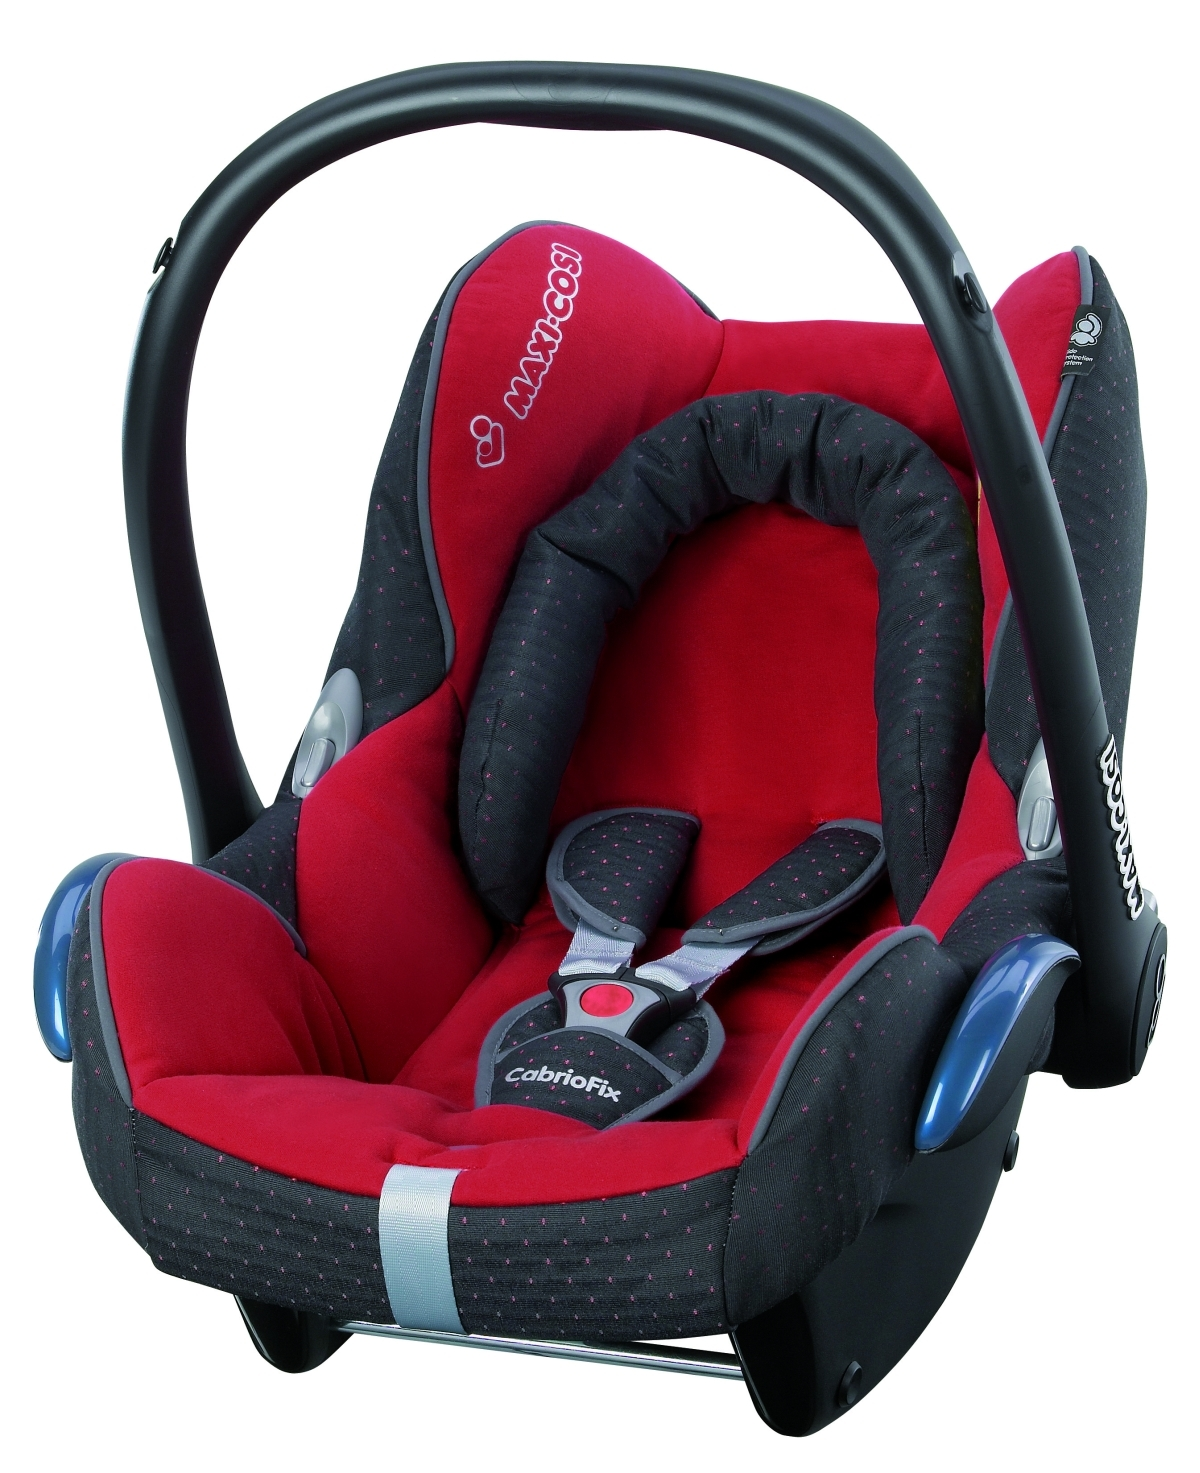 maxi cosi bet at home mobile Wett bet at home Punktzahl risultati serie bet at home tobi car seat design 2013 selectable color maxi cosi Car ...